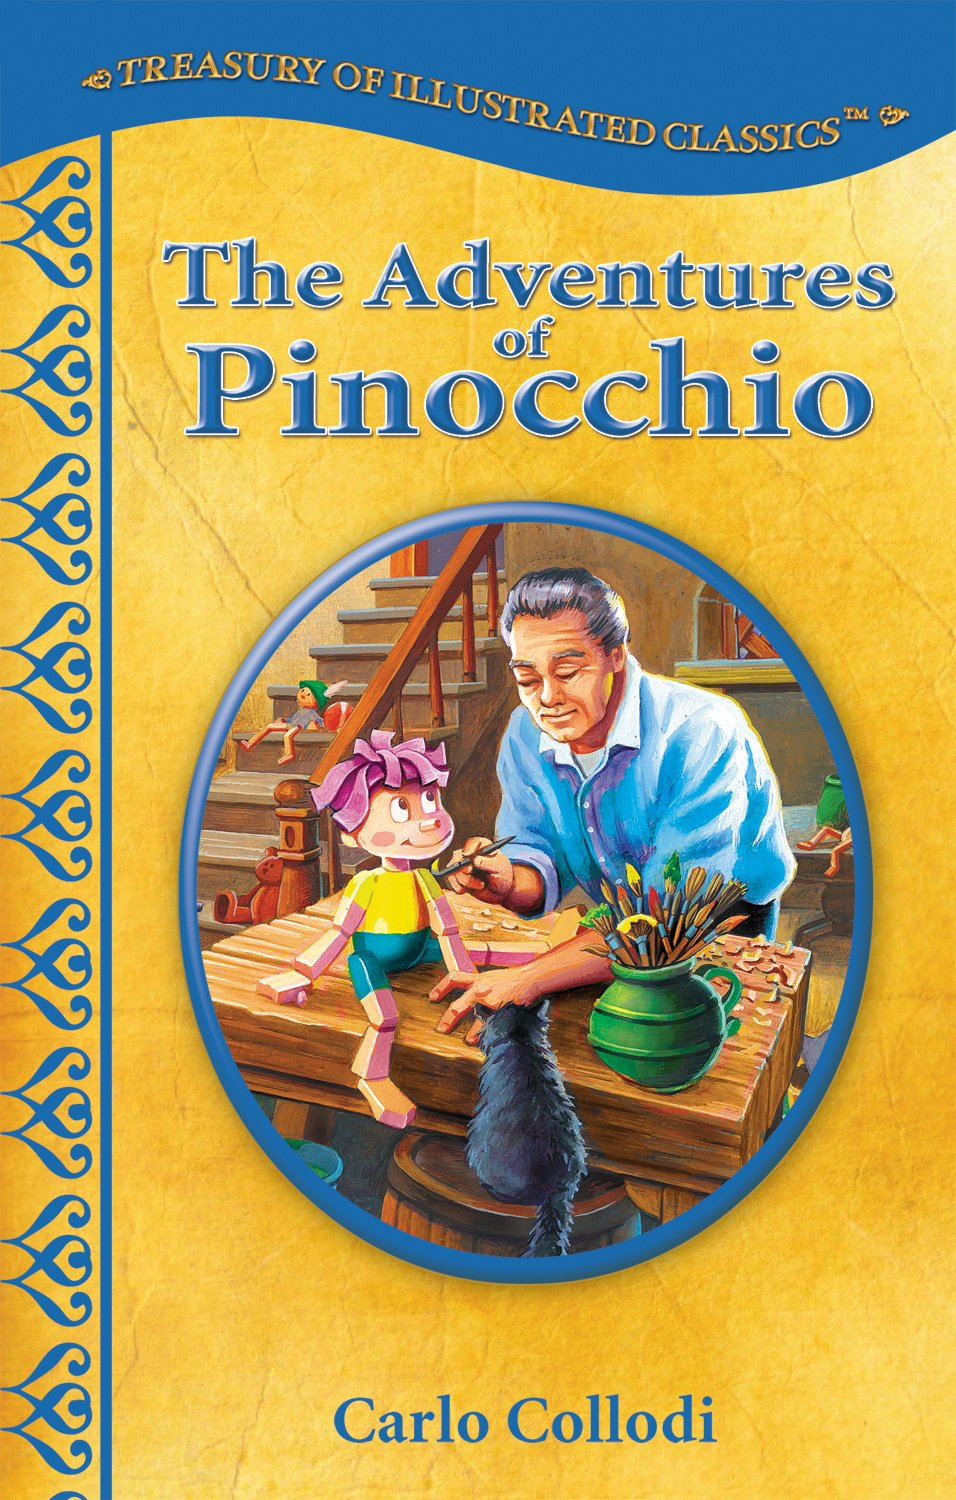 The Adventures of Pinocchio-Treasury of Illustrated Classics Storybook Collection PDF